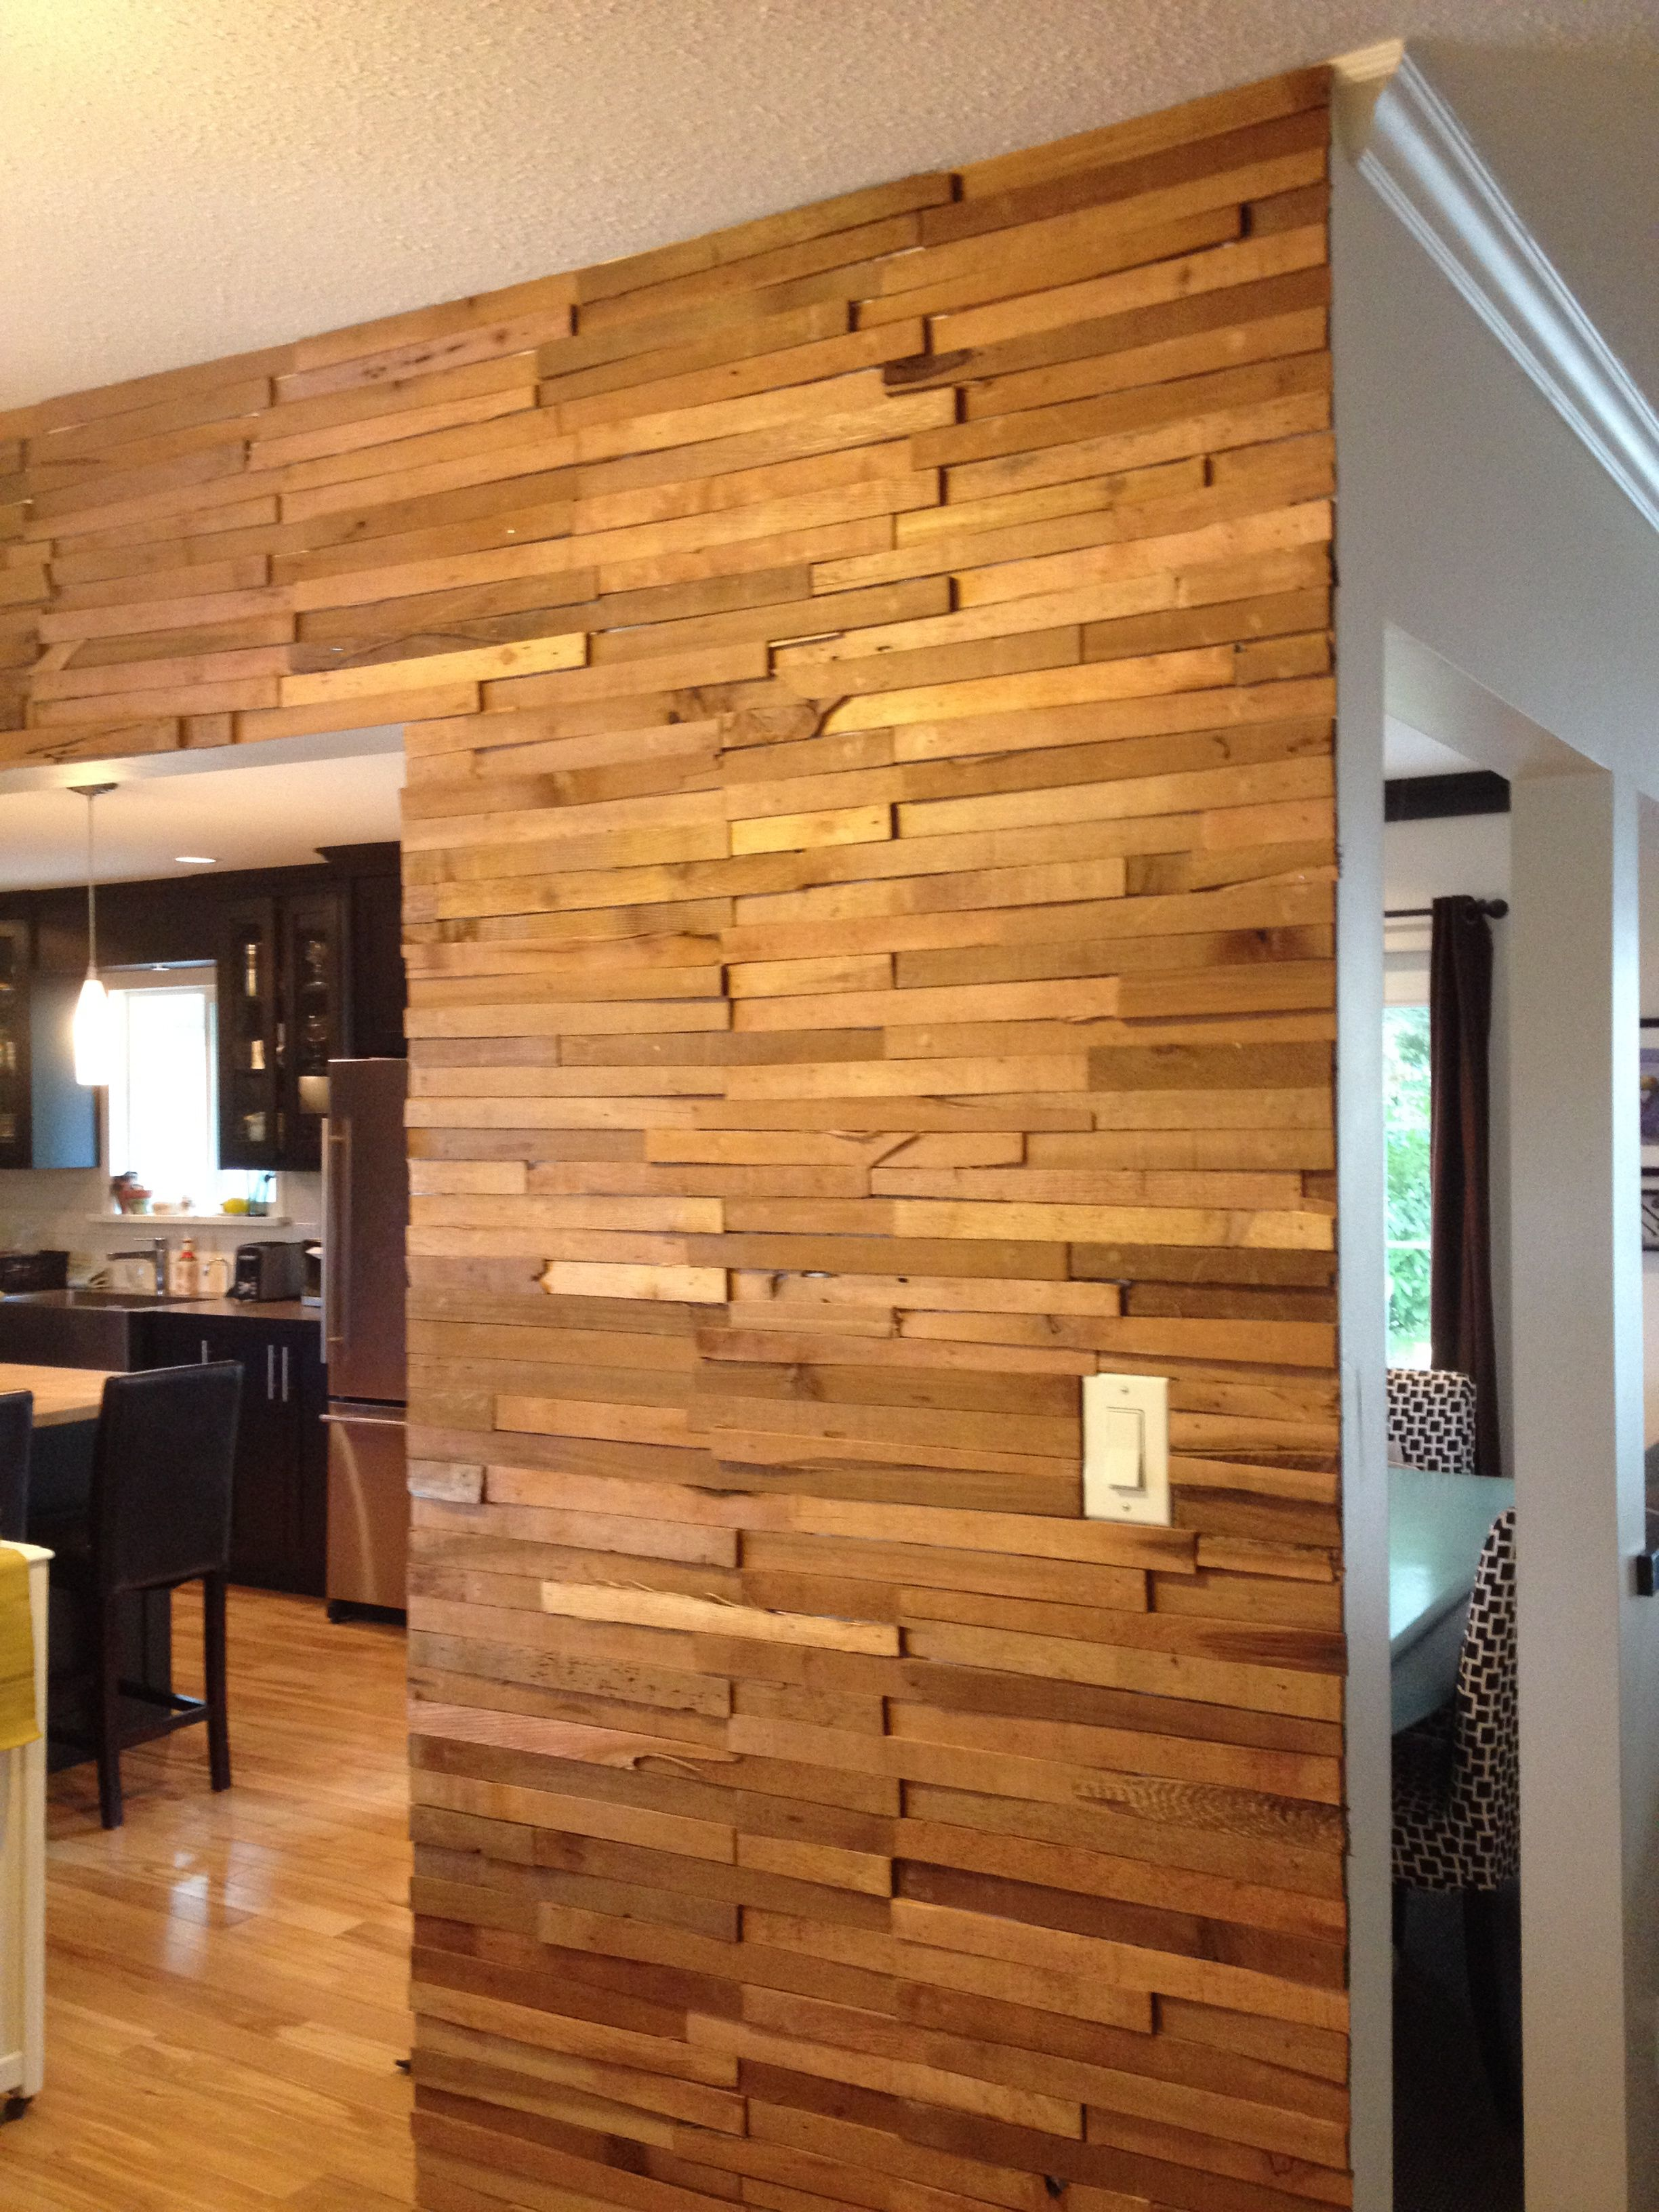 Shim Shimeny Cedar Walls Accent Walls In Living Room Room